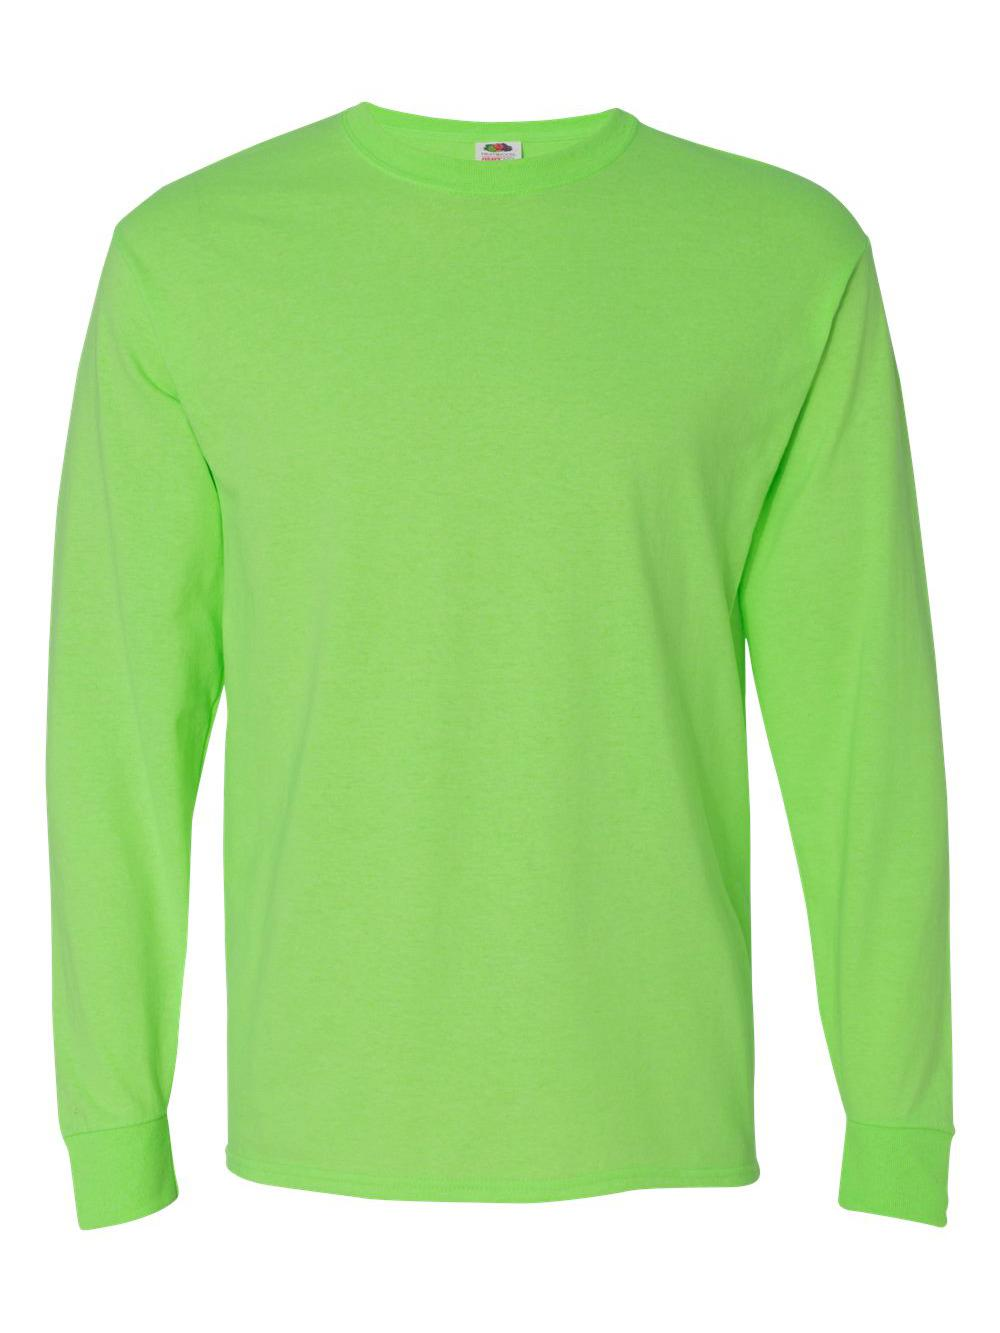 Fruit-of-the-Loom-HD-Cotton-Long-Sleeve-T-Shirt-4930R thumbnail 48